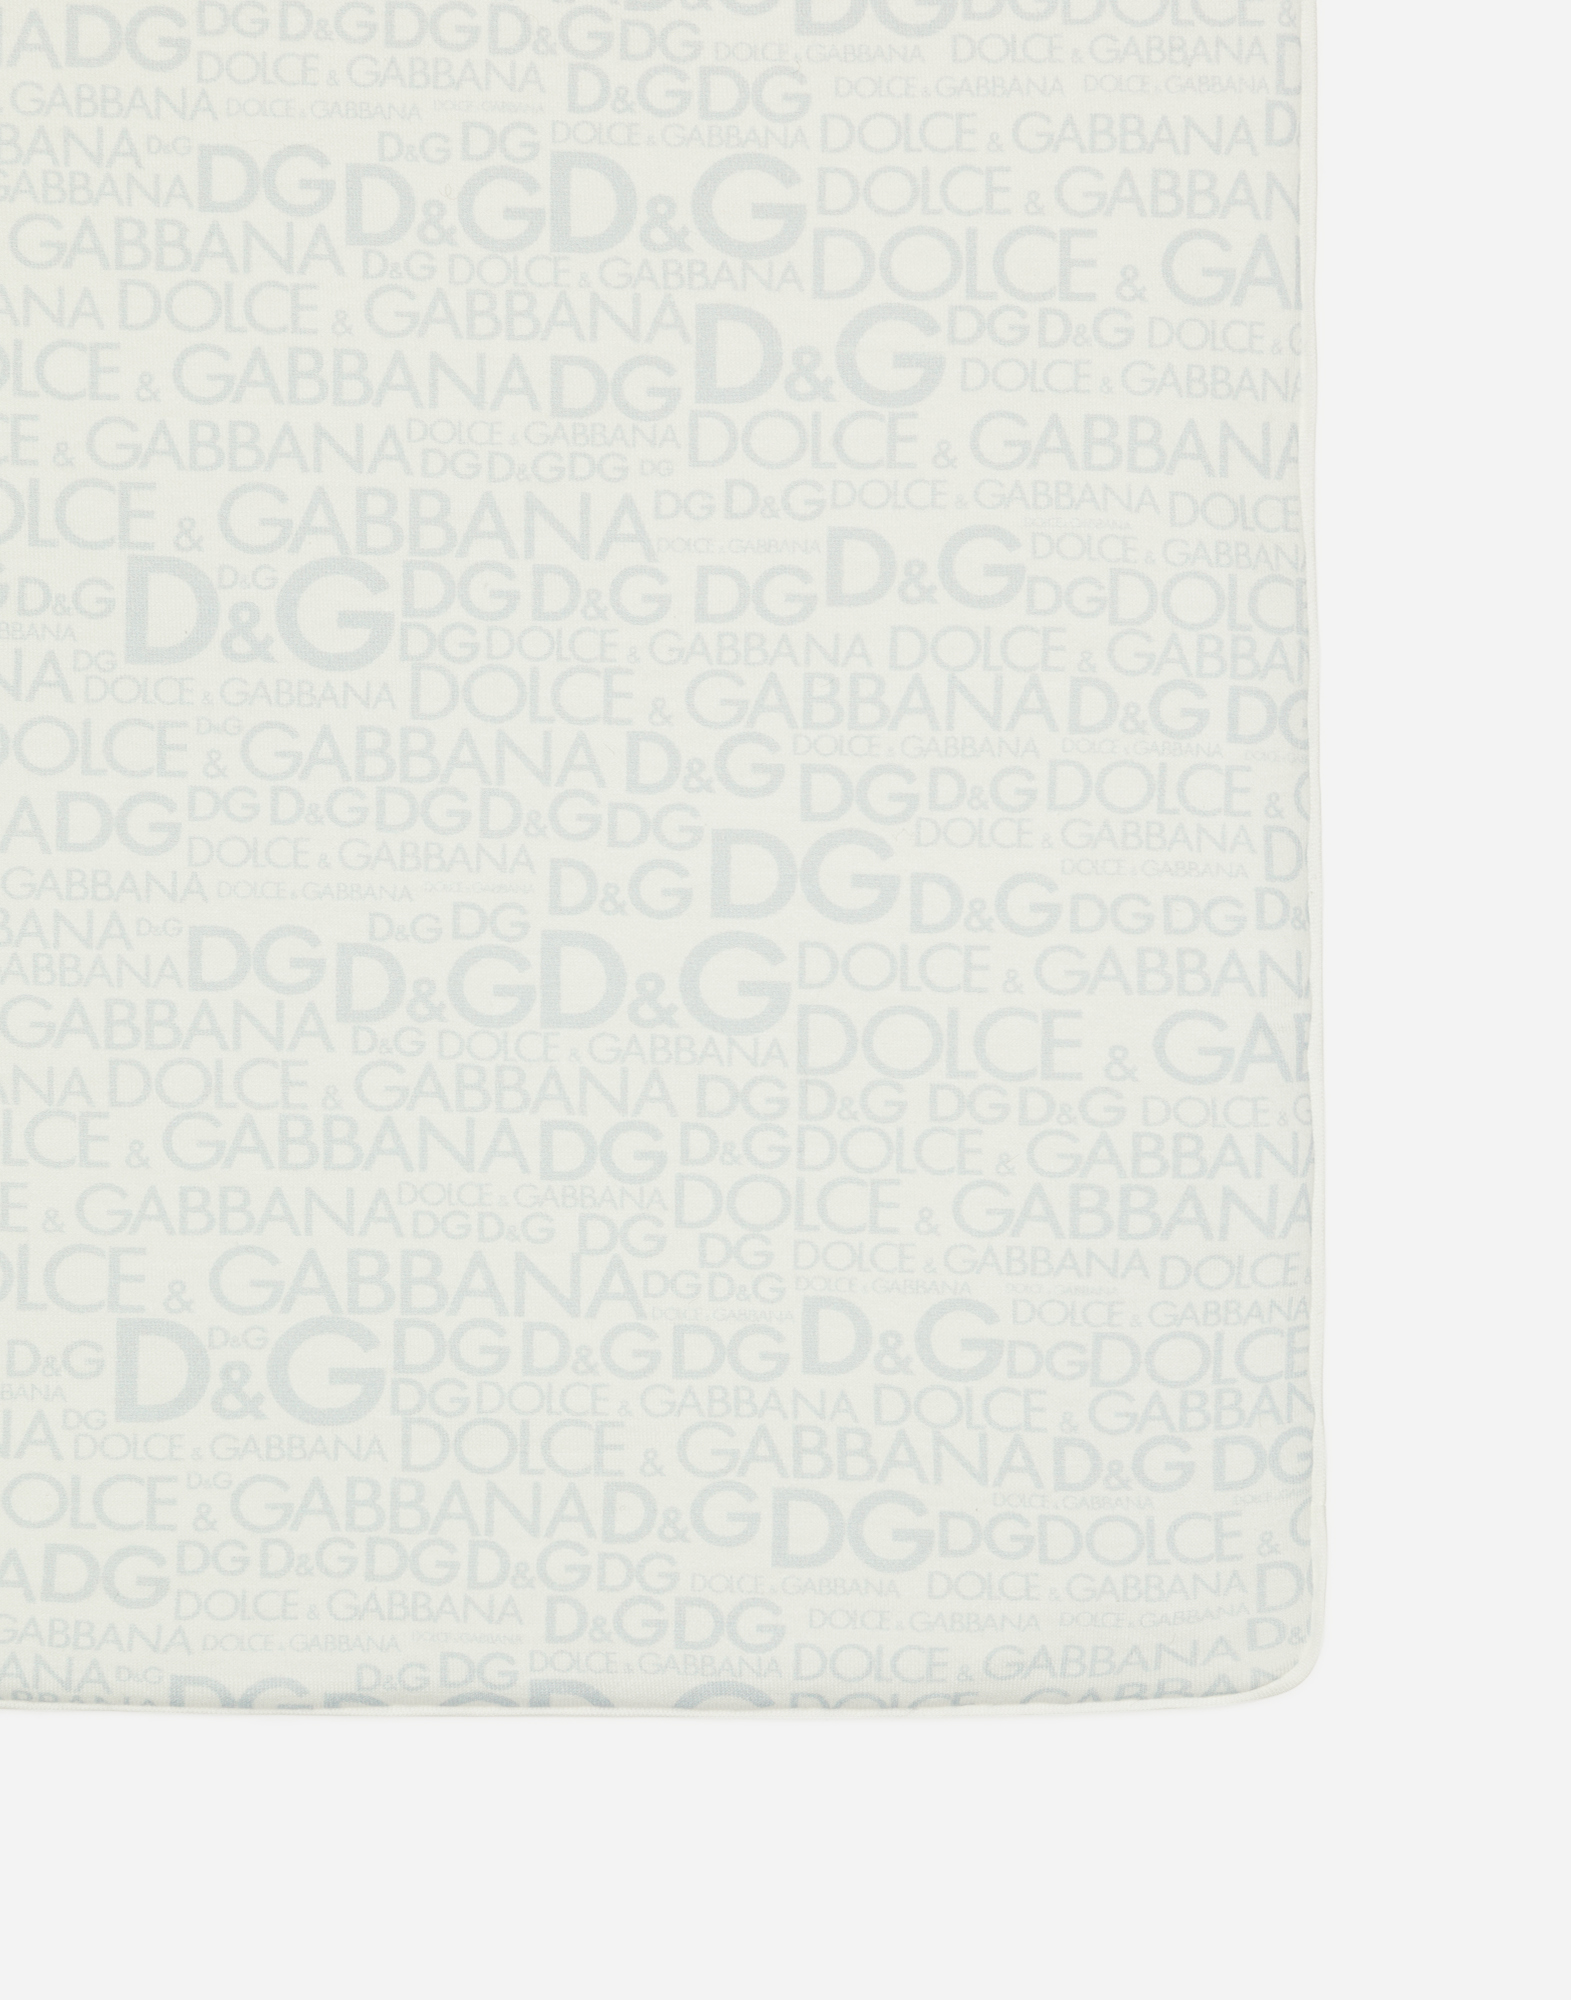 Dolce&Gabbana PRINTED COTTON BLANKET